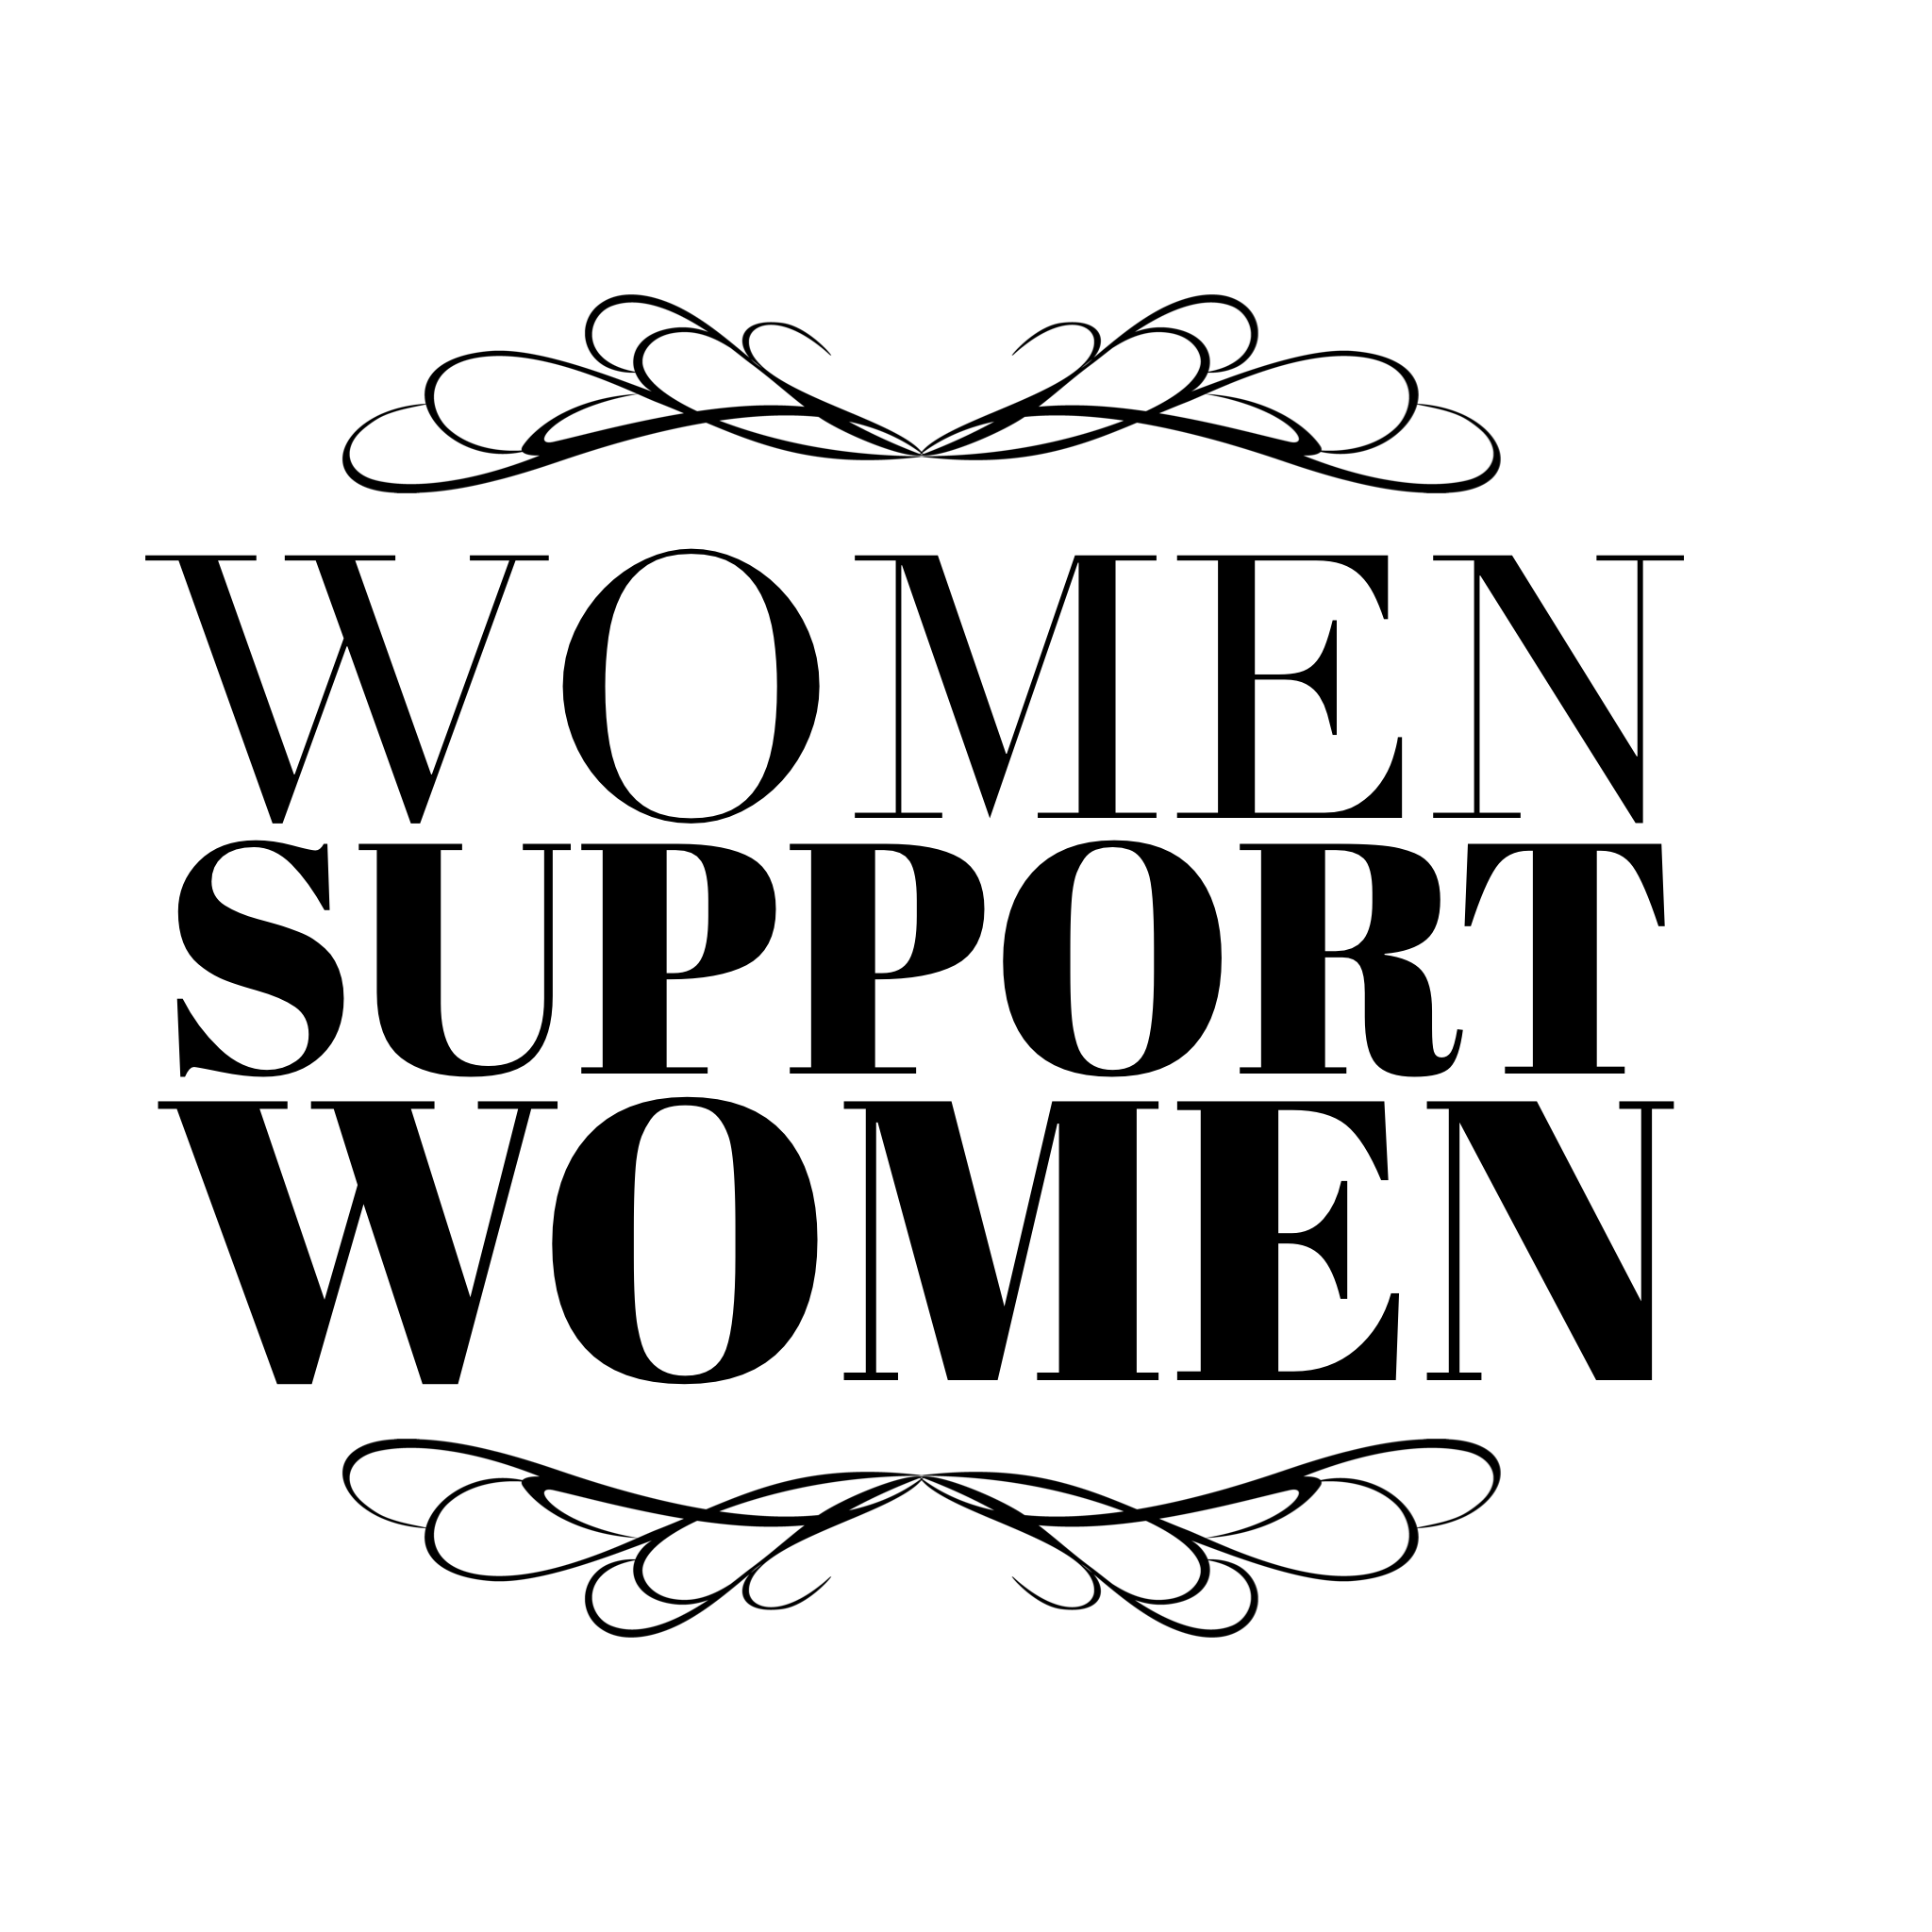 Women Support Women - Diversity, Equity, Inclusion